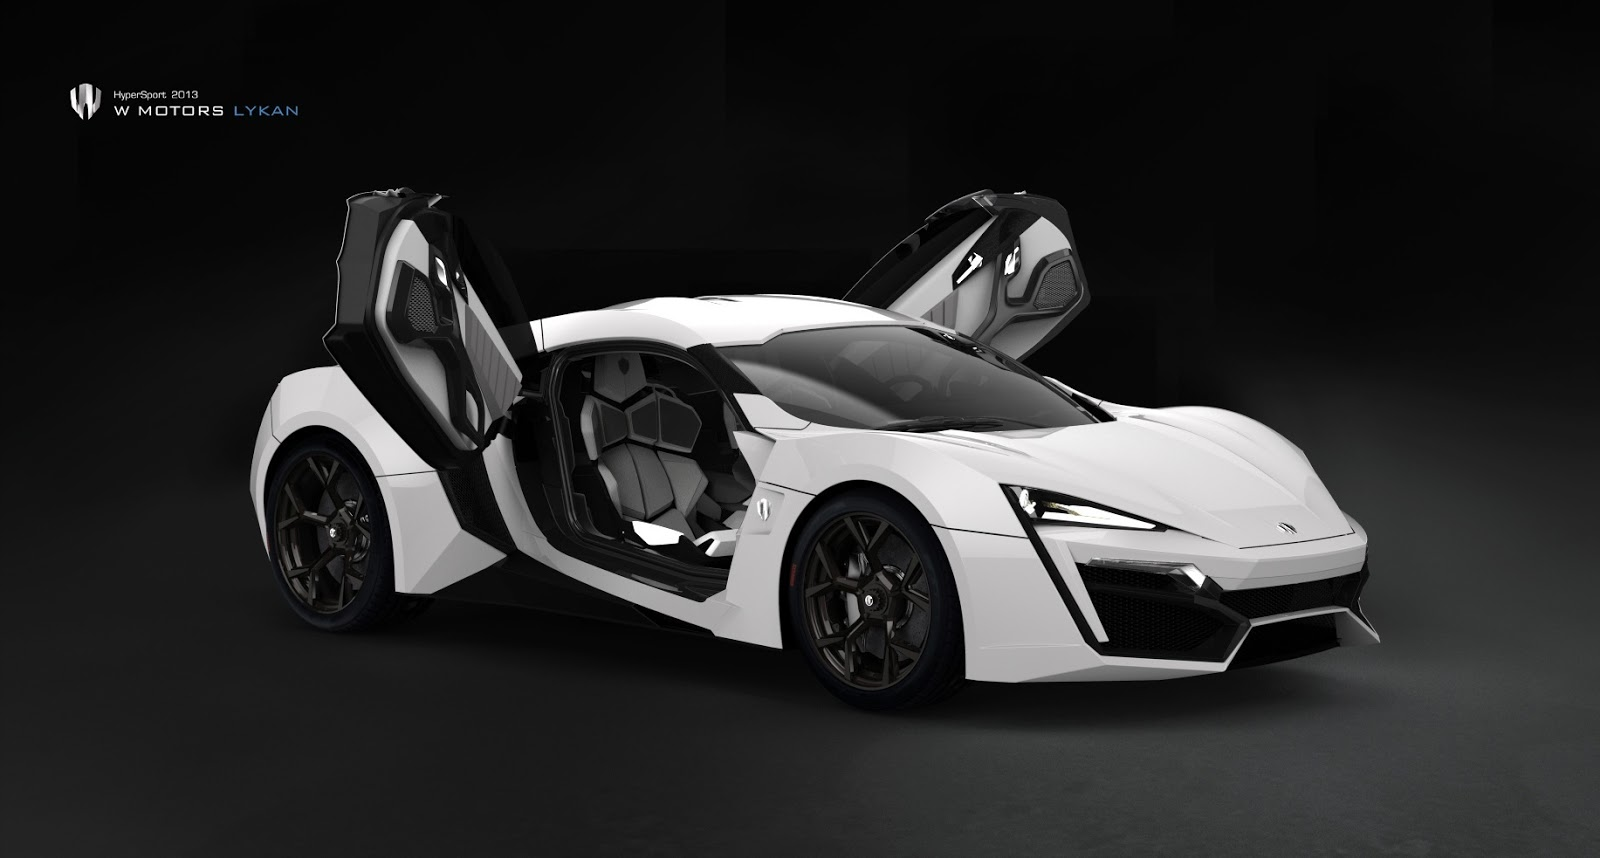 Lykan-HyperSport-2013_White-Edition-OpenDoor_Top Cars 2015